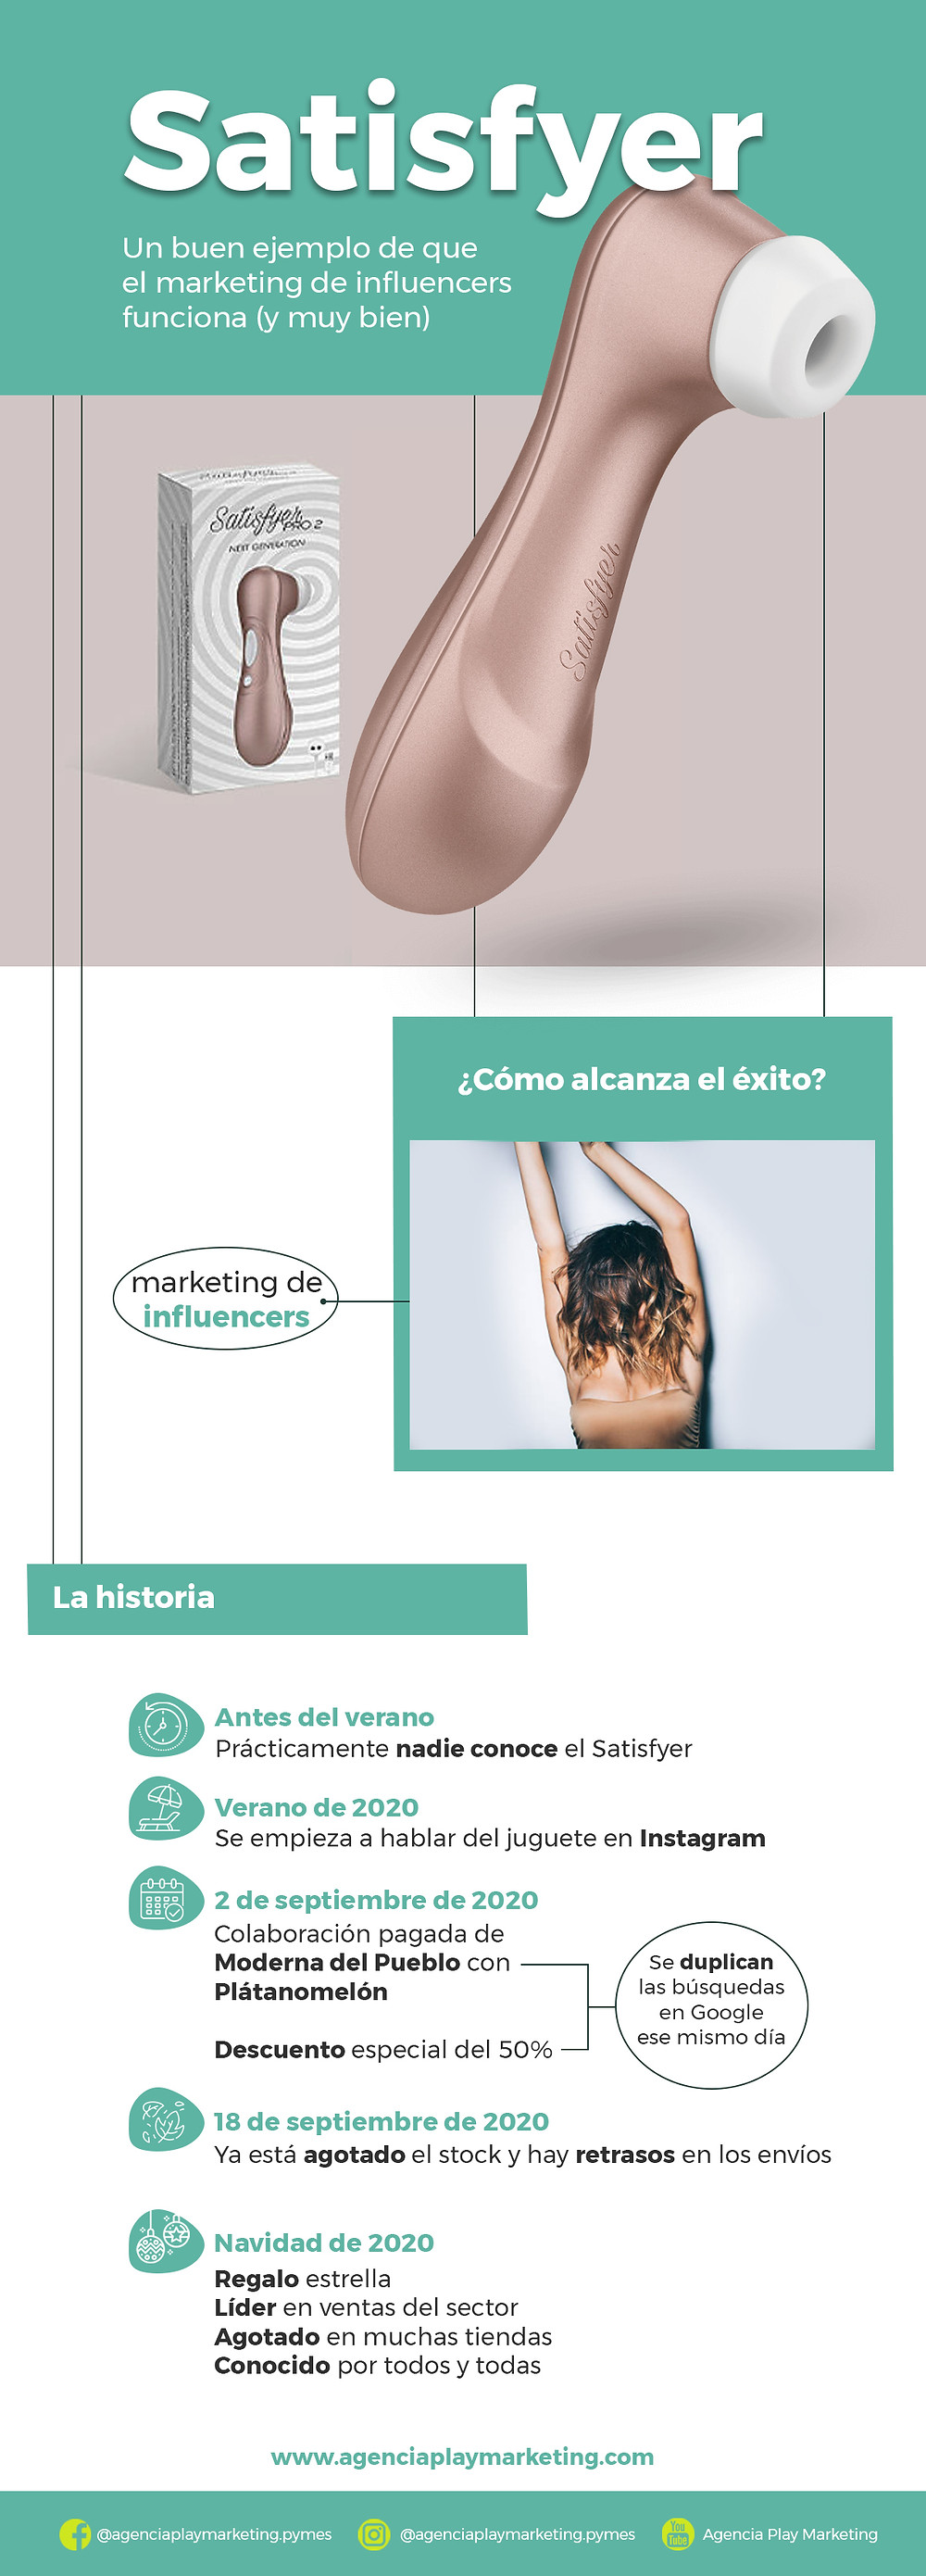 El caso Satisfyer. Marketing de influencers dispara tus ventas